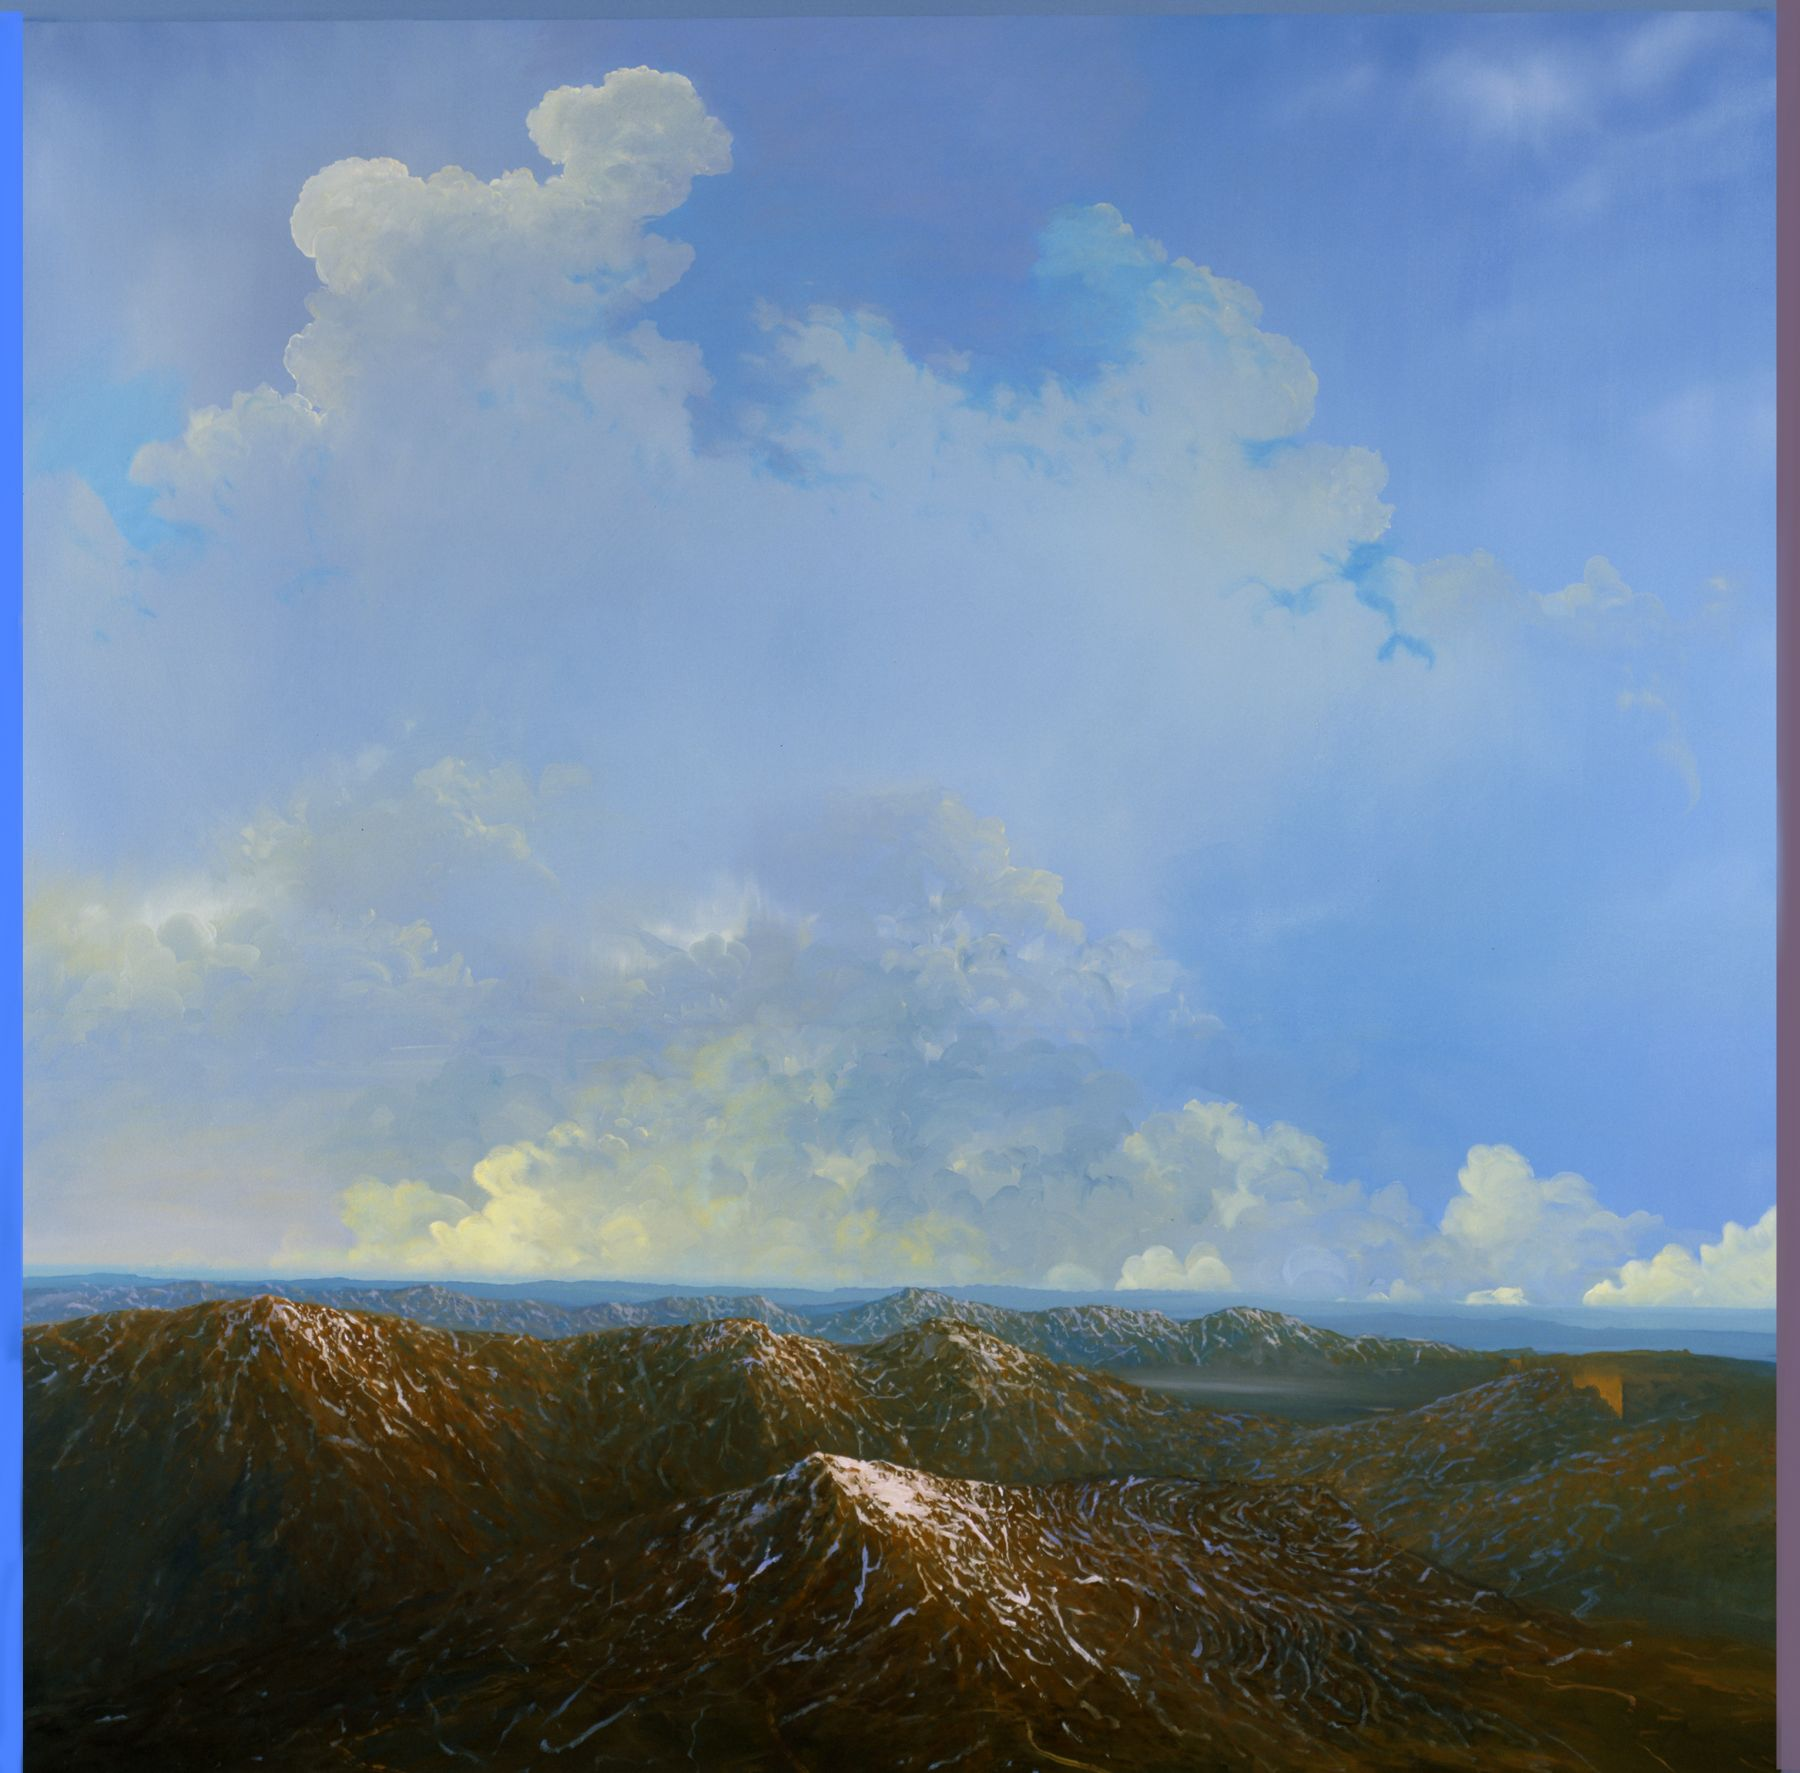 Tula Telfair, Perception Becomes Action, 2008, oil on canvas, 60 x 60 inches